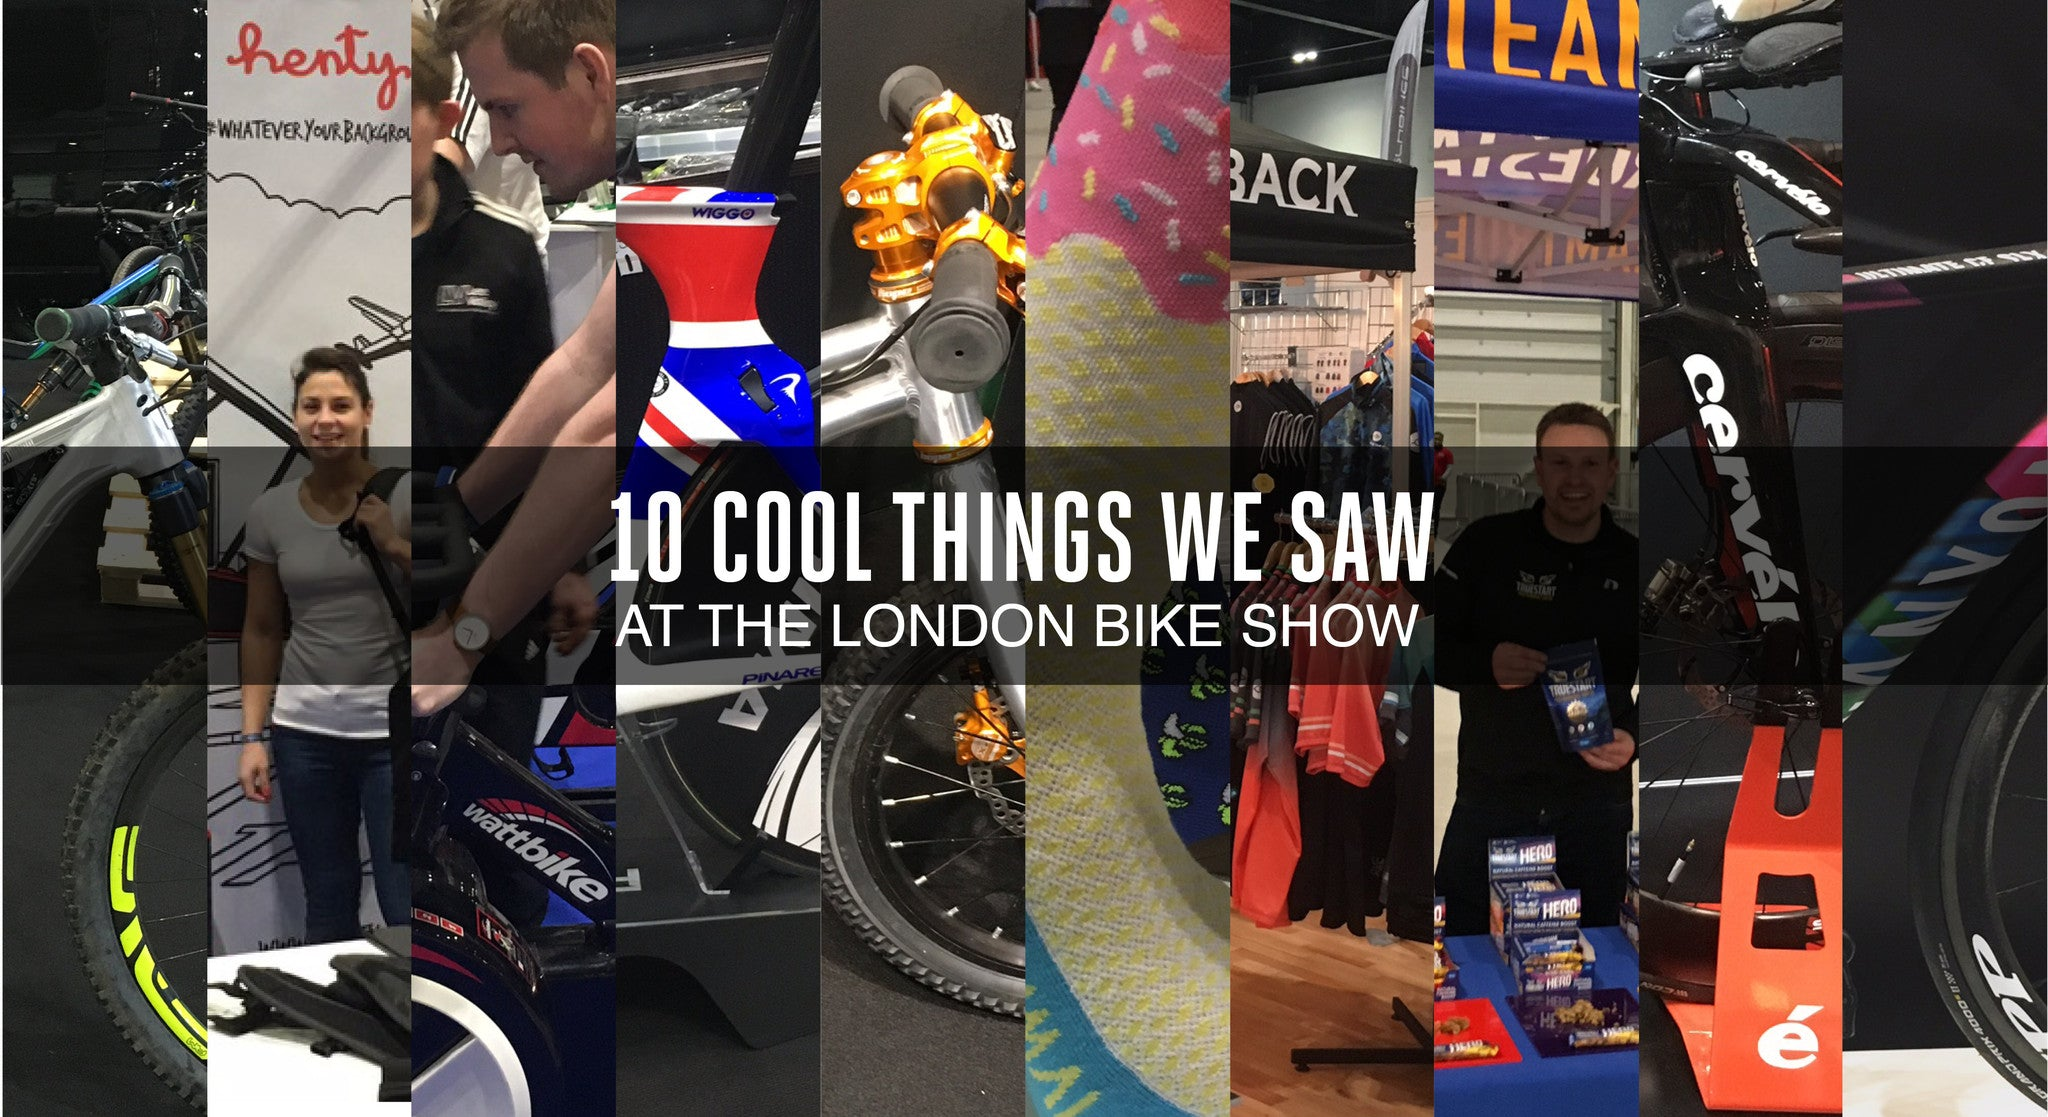 10 cool things we saw at the London Bike Show